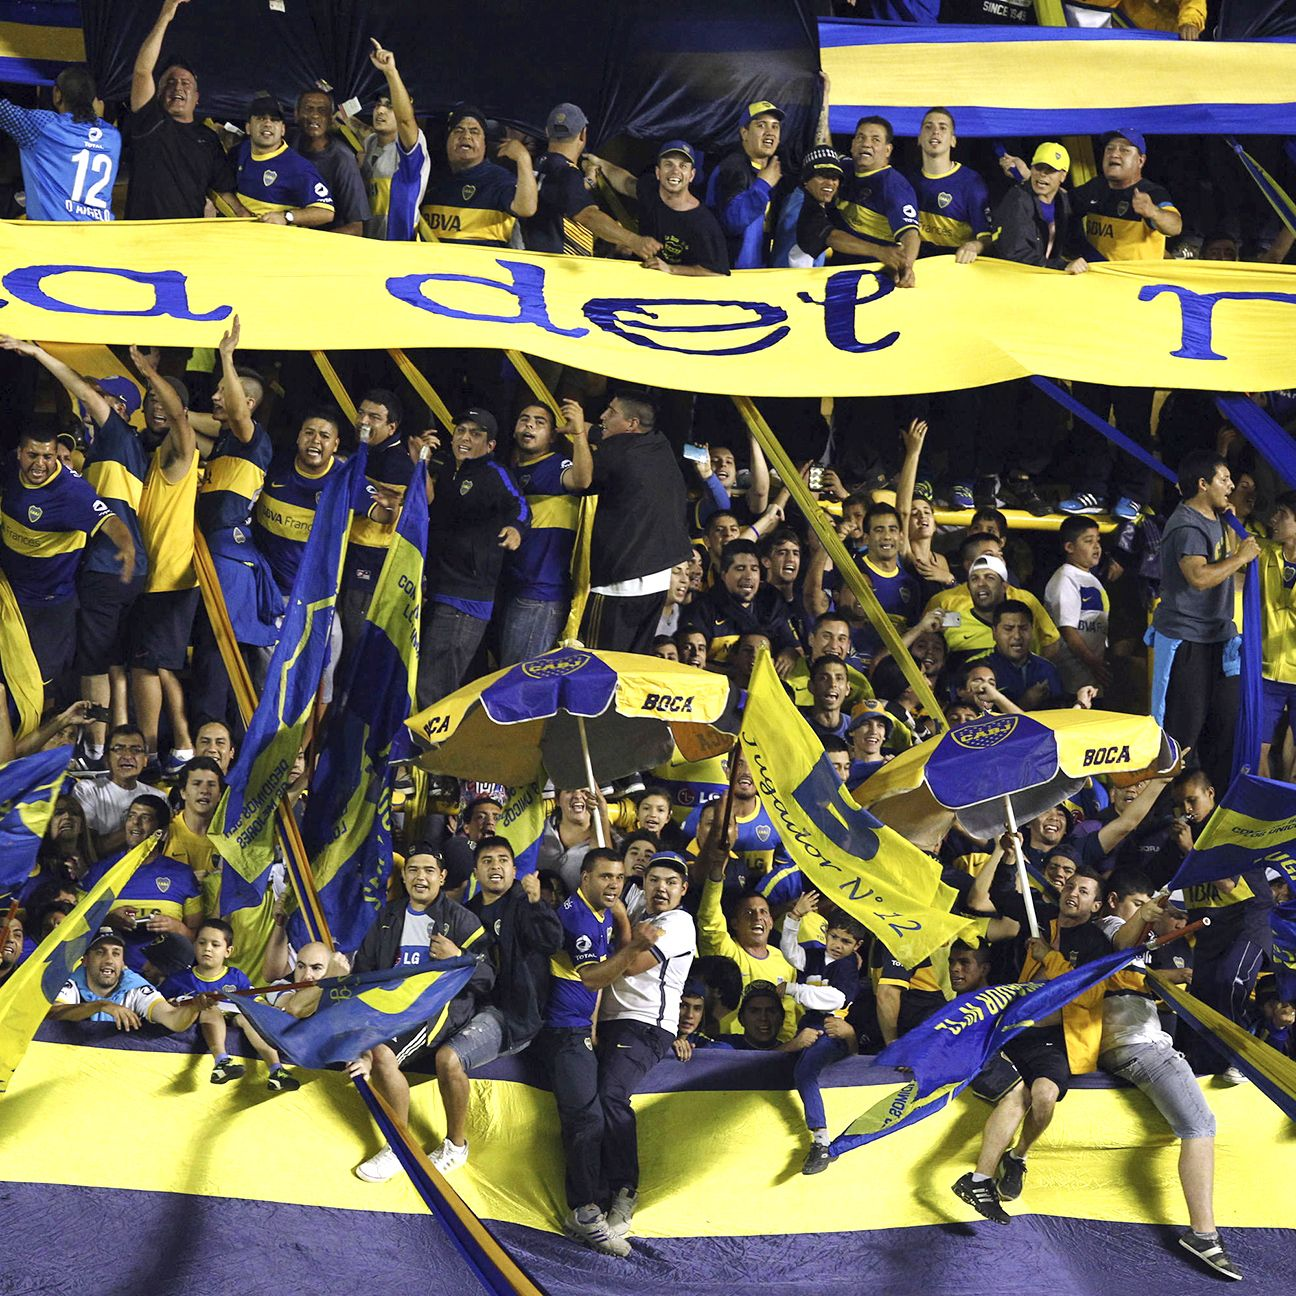 When it comes to continental competition between legendary Argentine rivals Boca Juniors and River Plate, most of the time it is the Boca fan base that ends up celebrating.